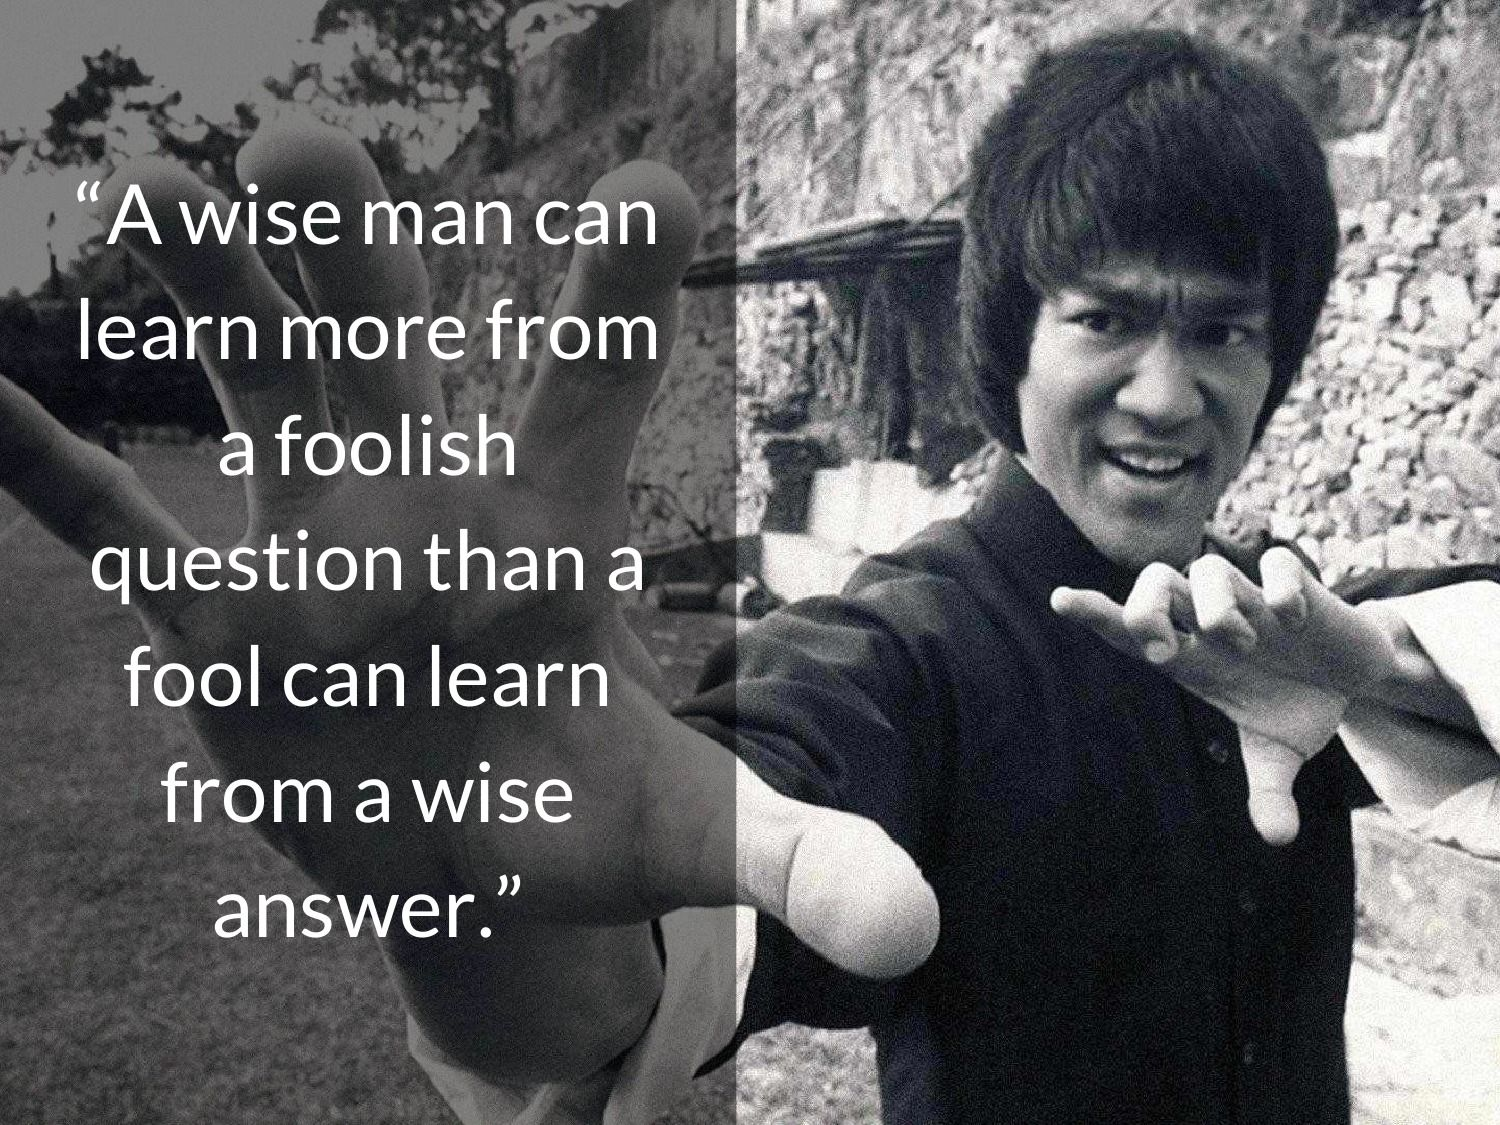 Bruce Lee A Wise Man Can Learn More From A Foolish Question Than A